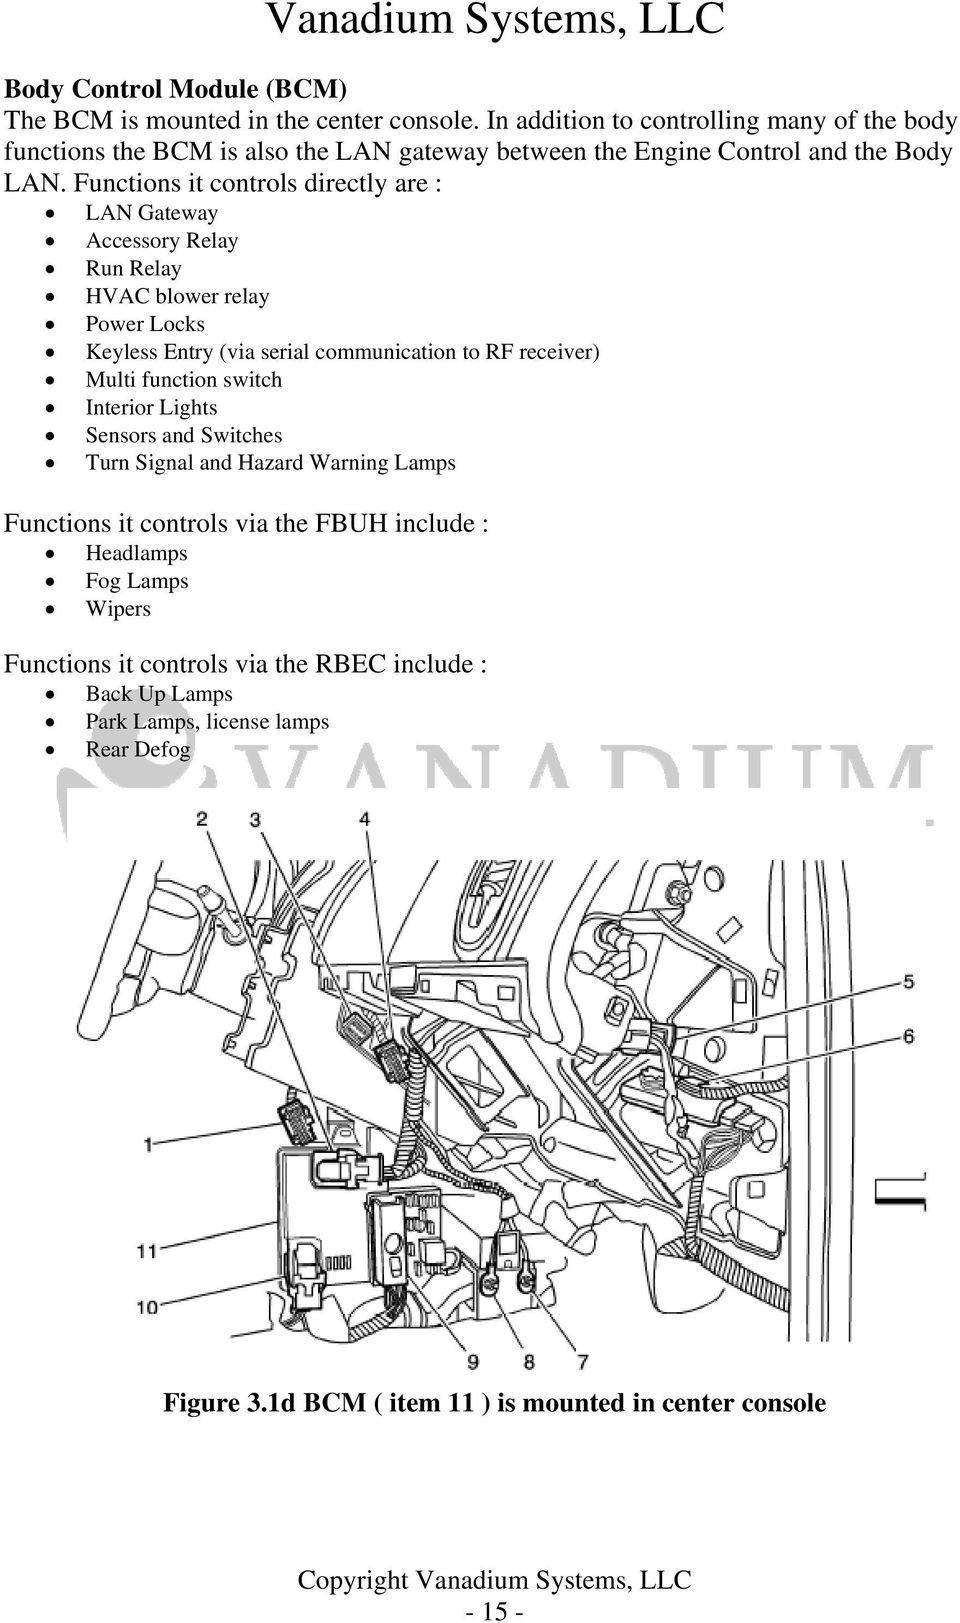 Automotive Architectures For Interior Electronics Pdf Diesel Module And Ip Controller Wiring Diagram Of 1979 Gmc Light Duty Truck Series 10 35 Functions It Controls Directly Are Lan Gateway Accessory Relay Run Hvac Blower Power